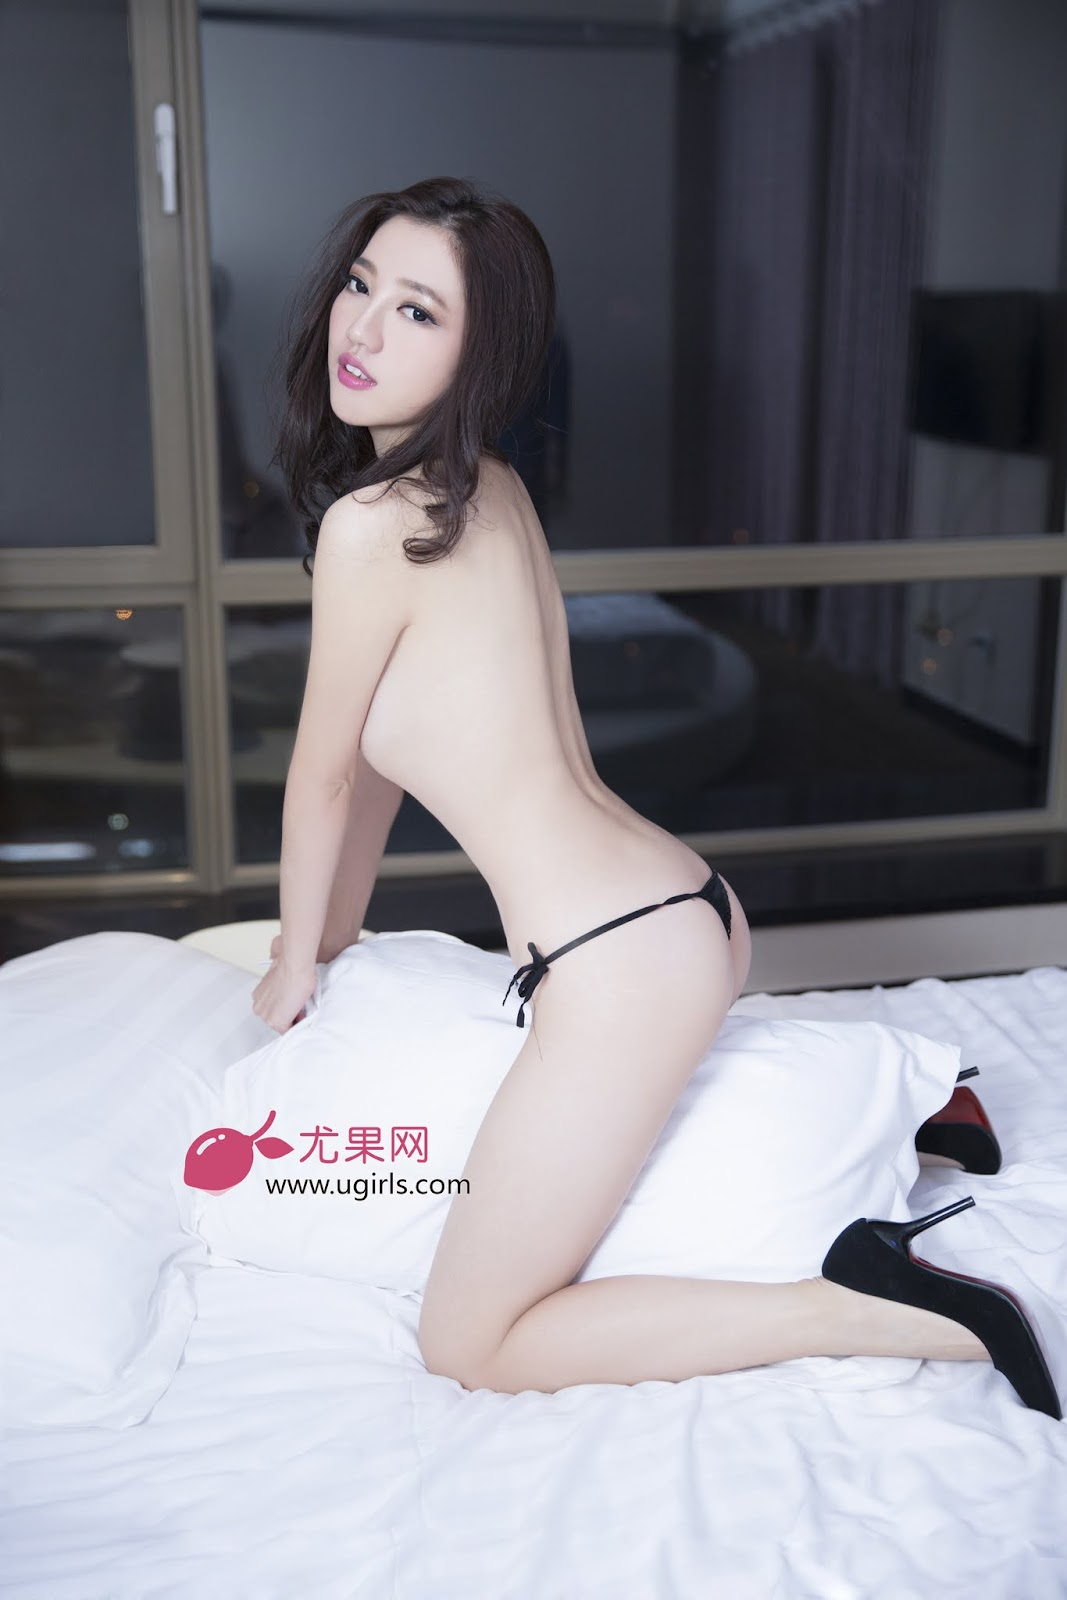 A14A5545 - Hot Model UGIRLS NO.8